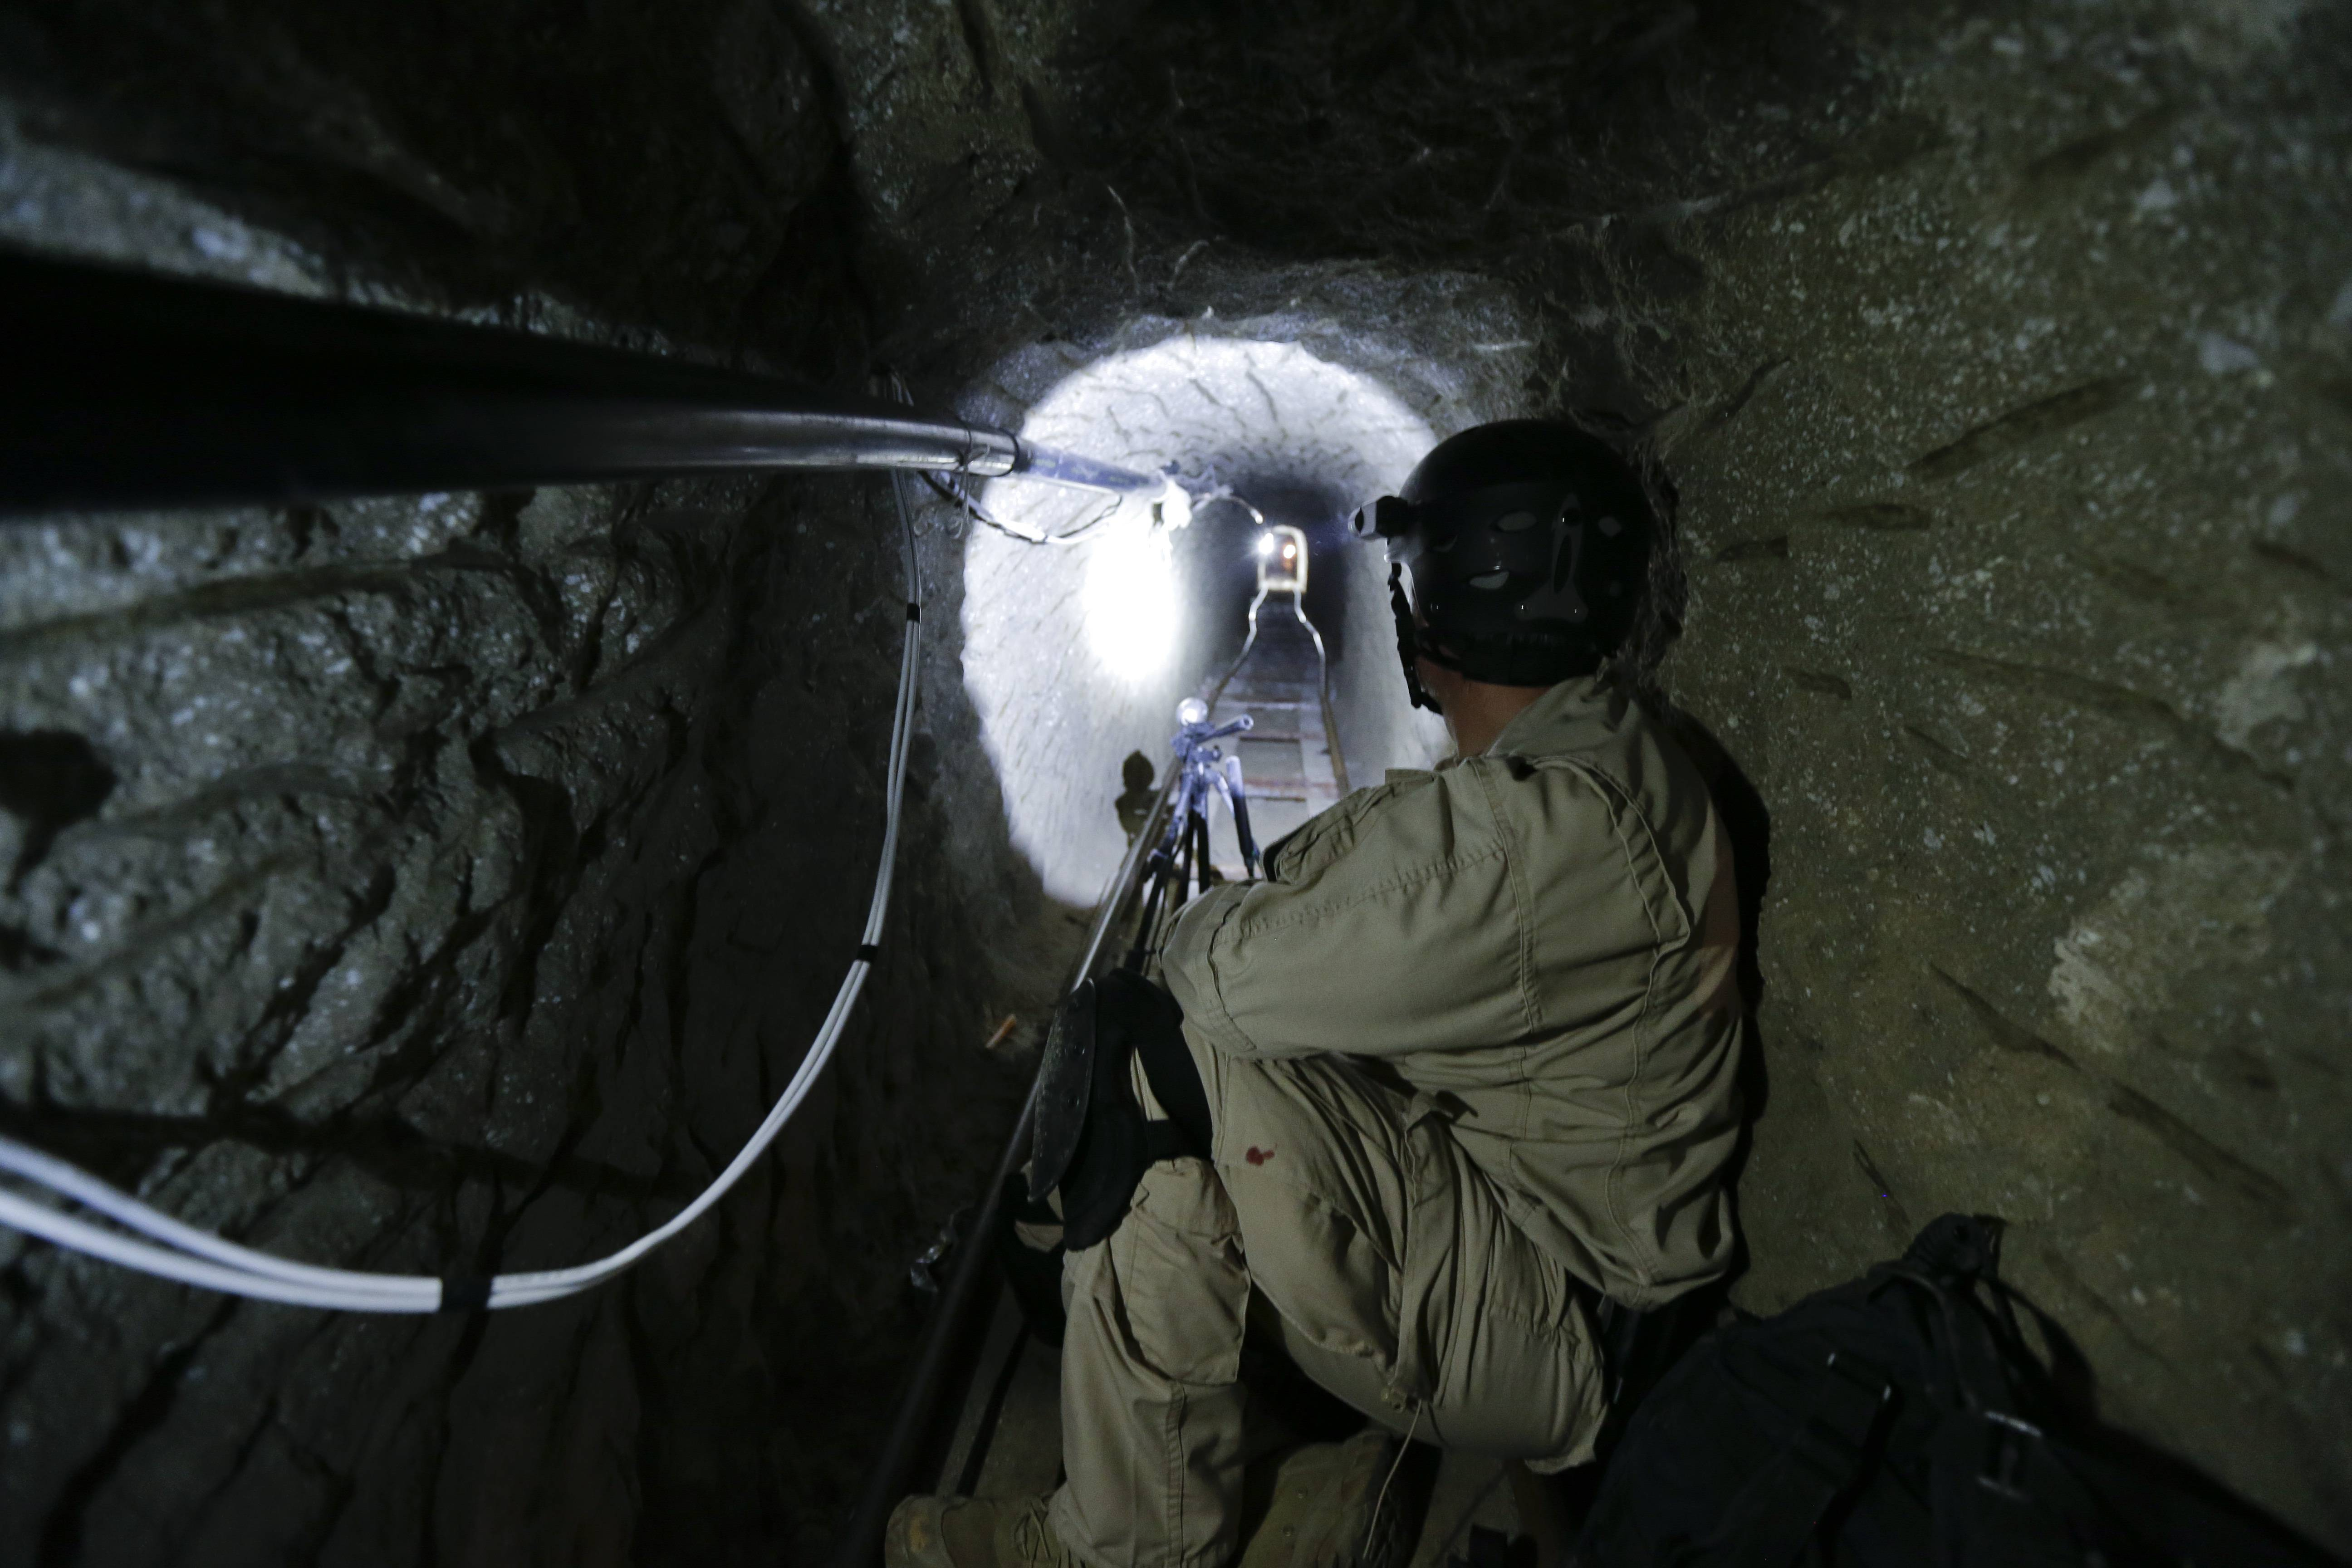 "In photo taken on Nov. 4, 2013, a Homeland Security Investigations member of the special response team looks south in a border tunnel equipped with lighting, ventilation and an electric rail system discovered between Tijuana, Mexico and San Diego in San Diego. Discovered on Oct. 30, 2013, the secret passage on the U.S.-Mexico border was linked by authorities to Mexico's Sinaloa cartel and its leader, Joaquin ""El Chapo"" Guzman, who was arrested on Feb. 22, 2014 in Maztalan, Mexico."